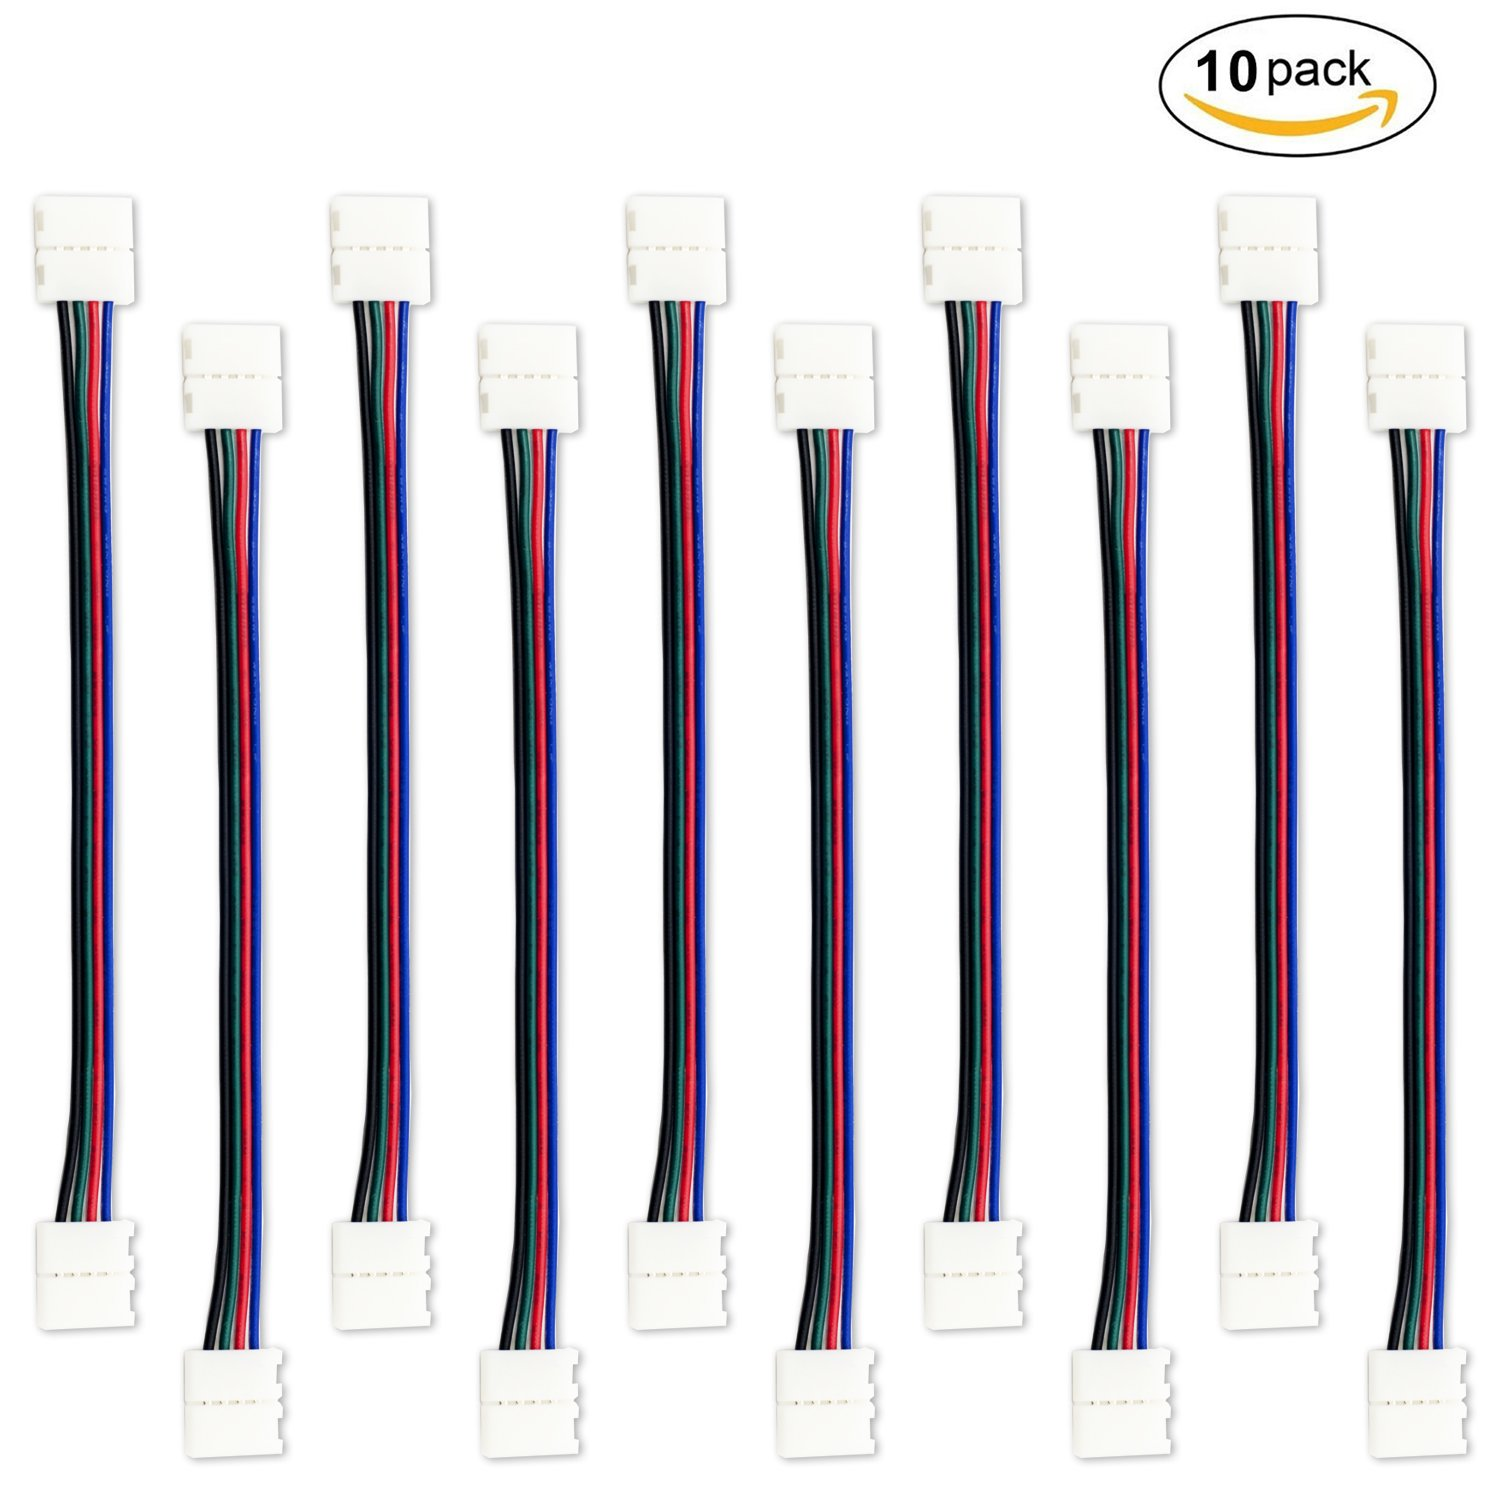 10 PCS 4 Pin 10mm LED Connector for 3528/Non-waterproof SMD 5050 LED Strip Light RGB LED Strip Connector Jumper- 17cm/ 6.7 inch Long